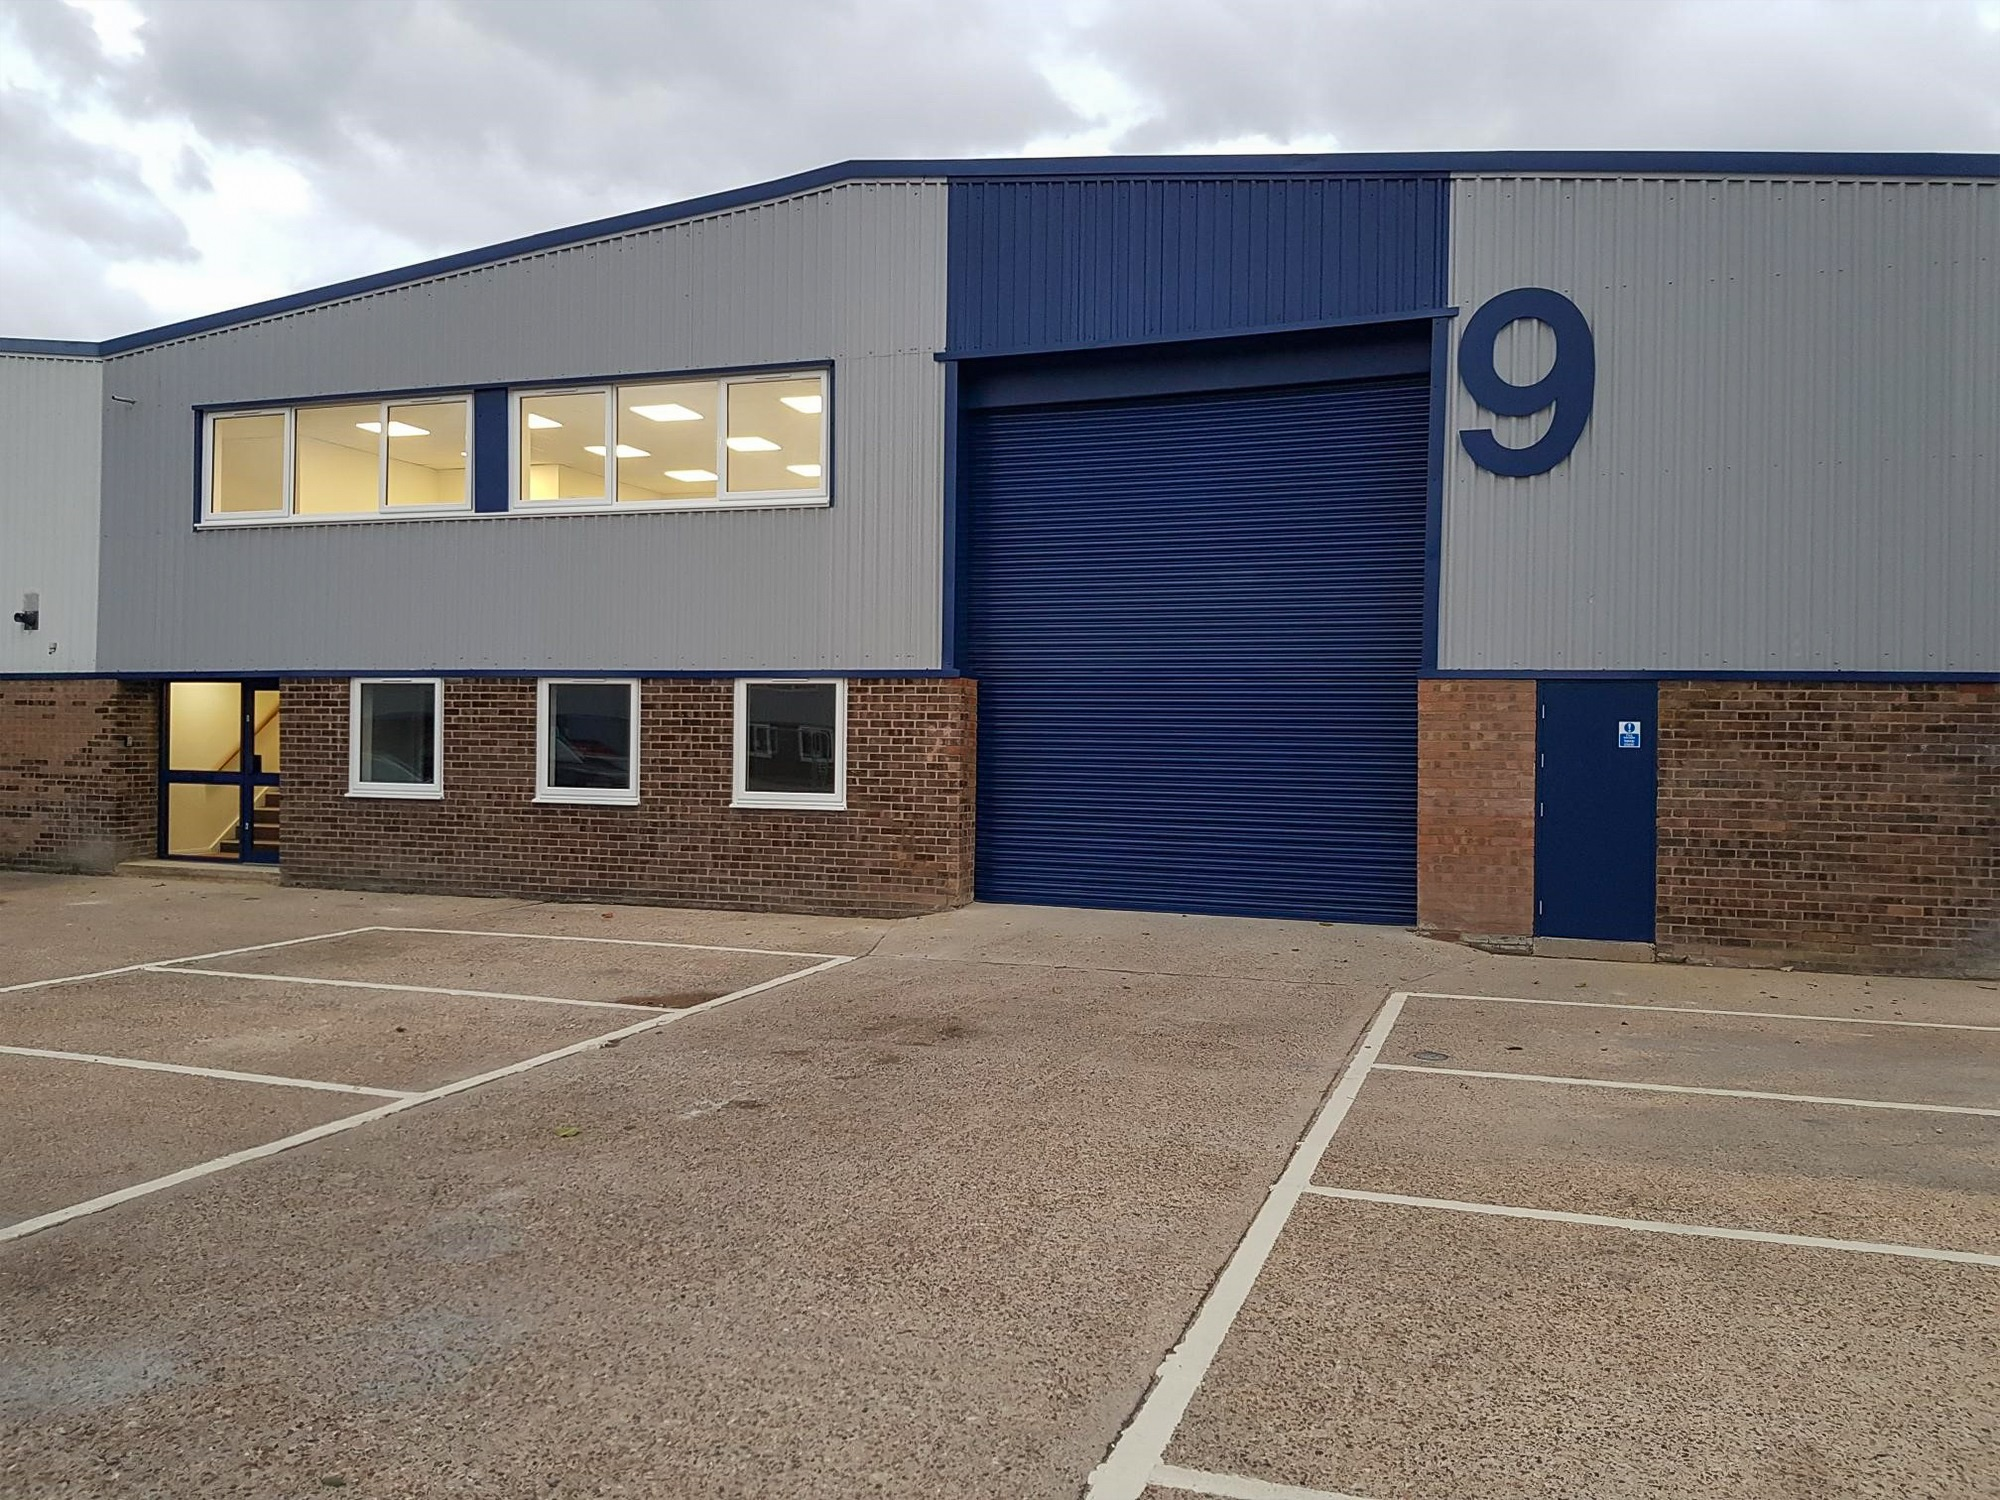 warehouse unit with a large blue door and roof